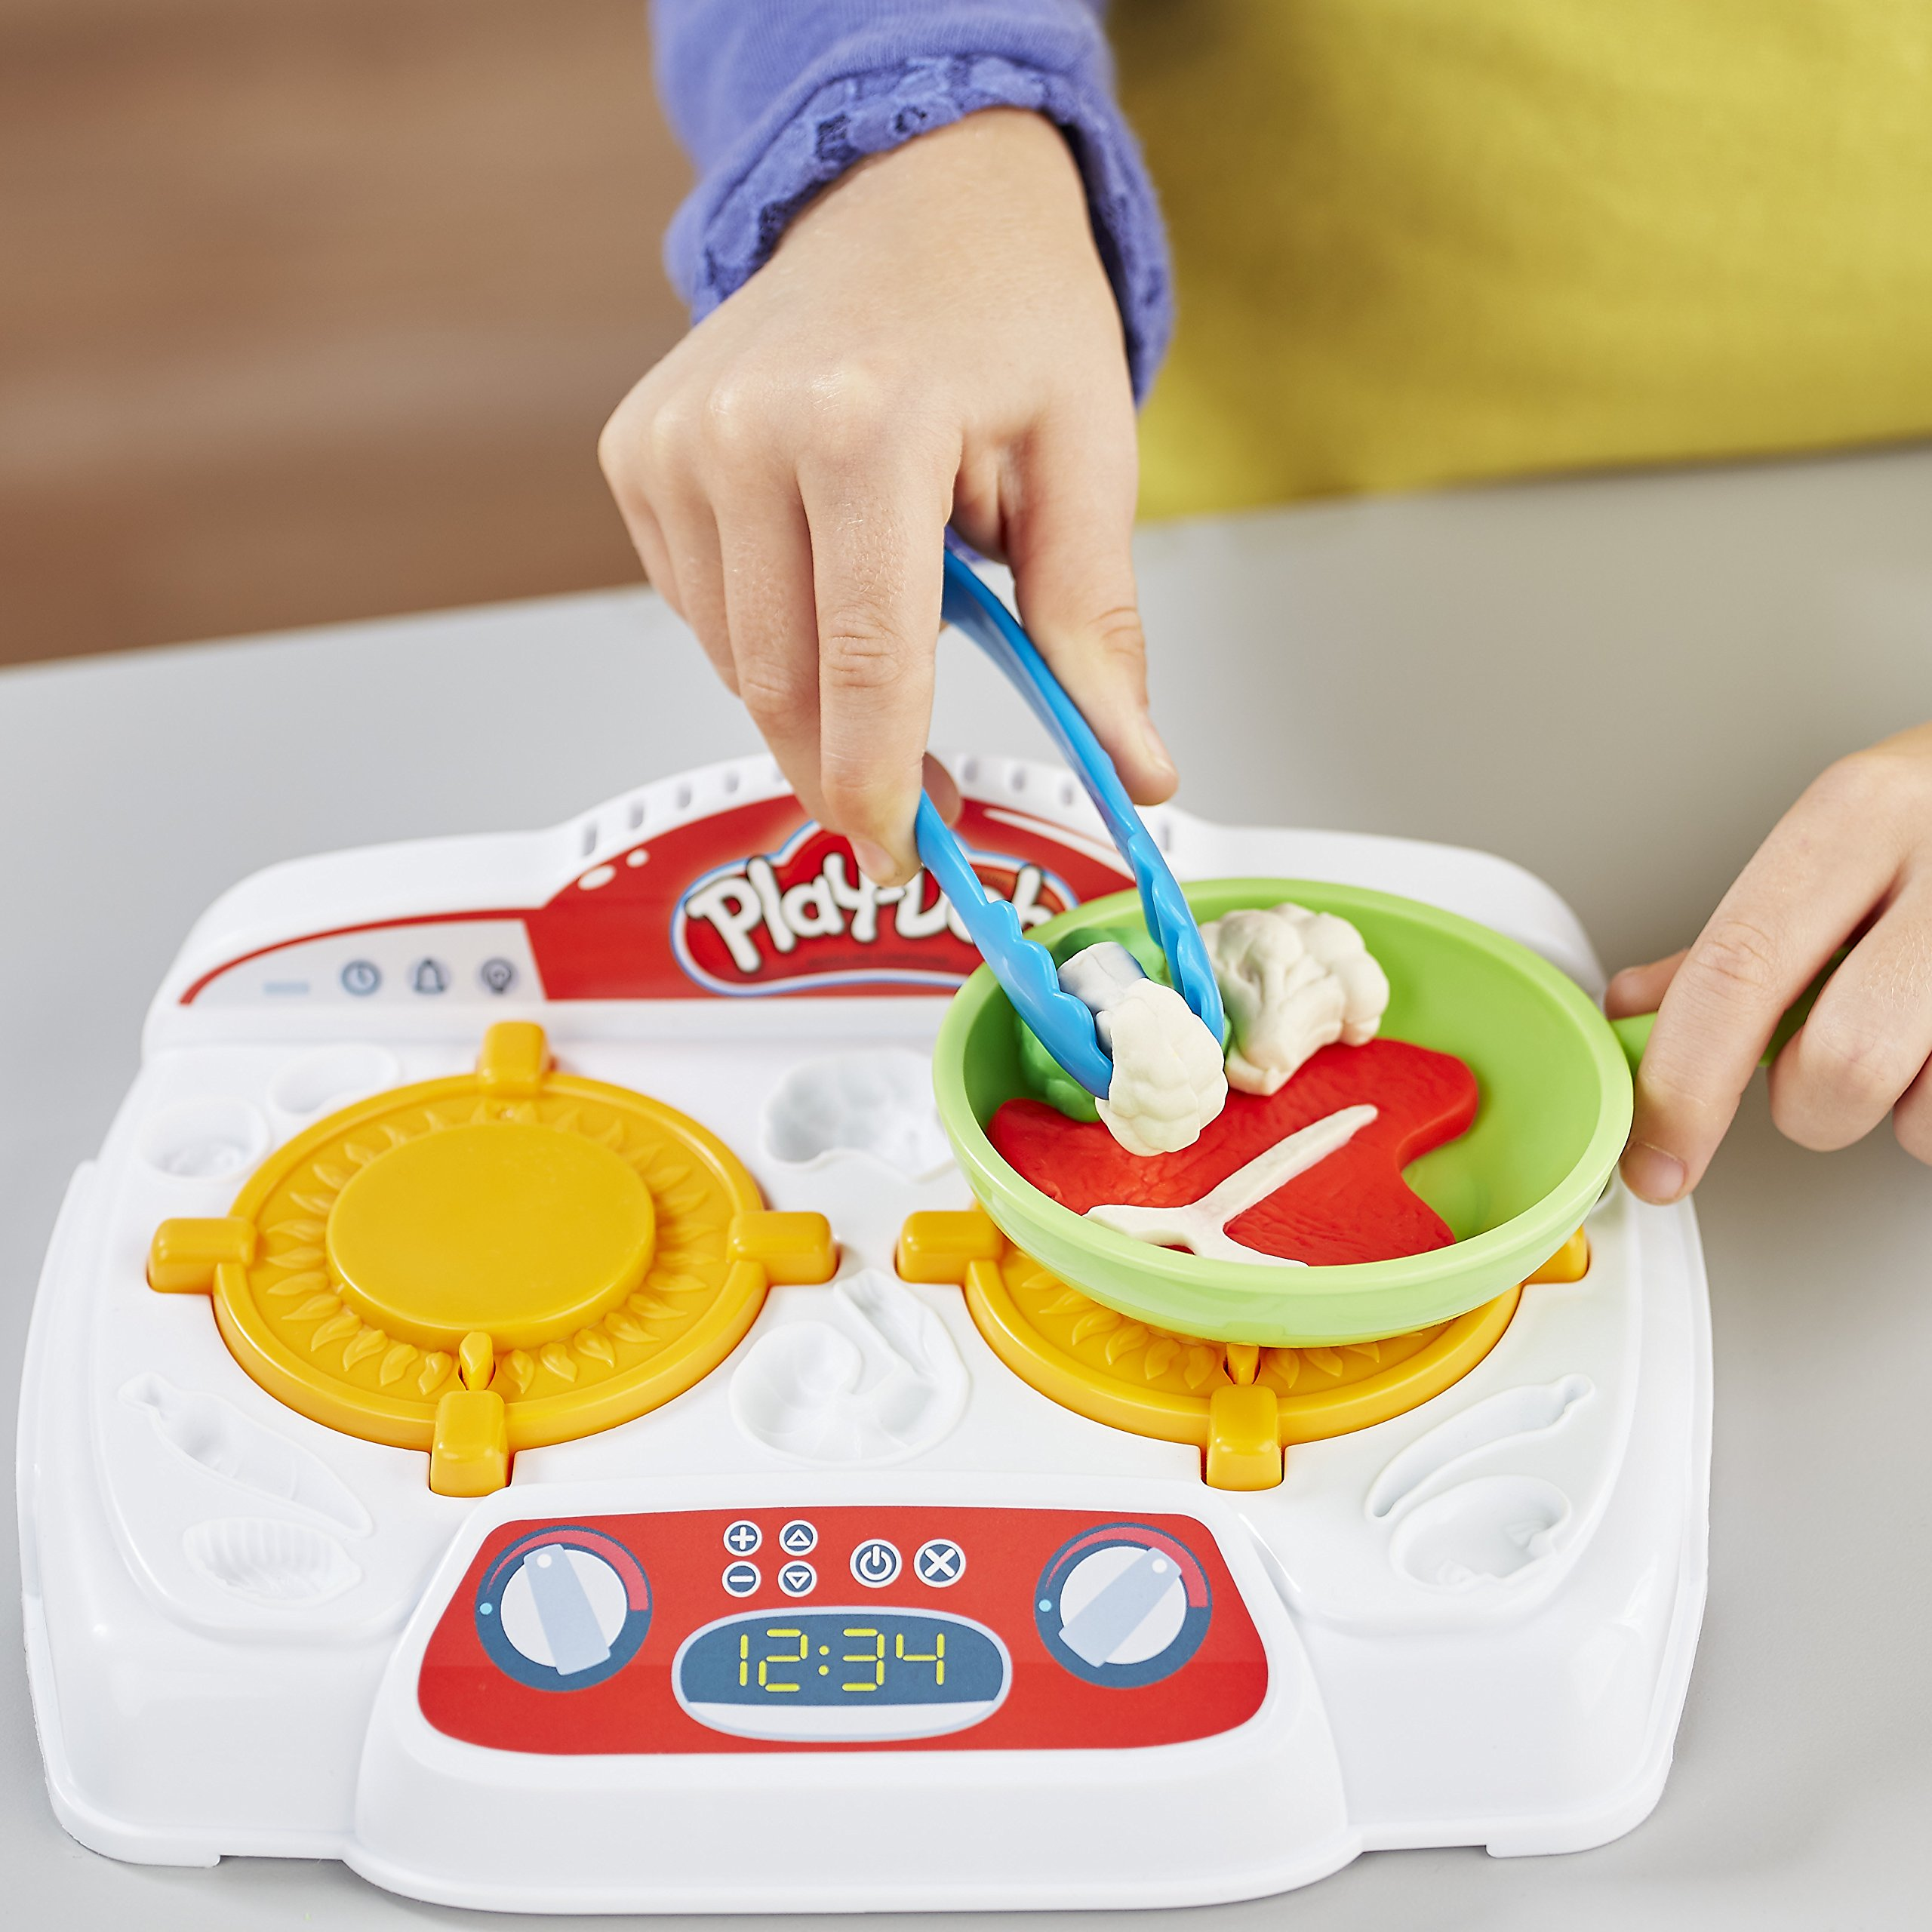 Play-Doh - B9014 - Kitchen Creations Sizzling Stovetop by Play-Doh (Image #6)